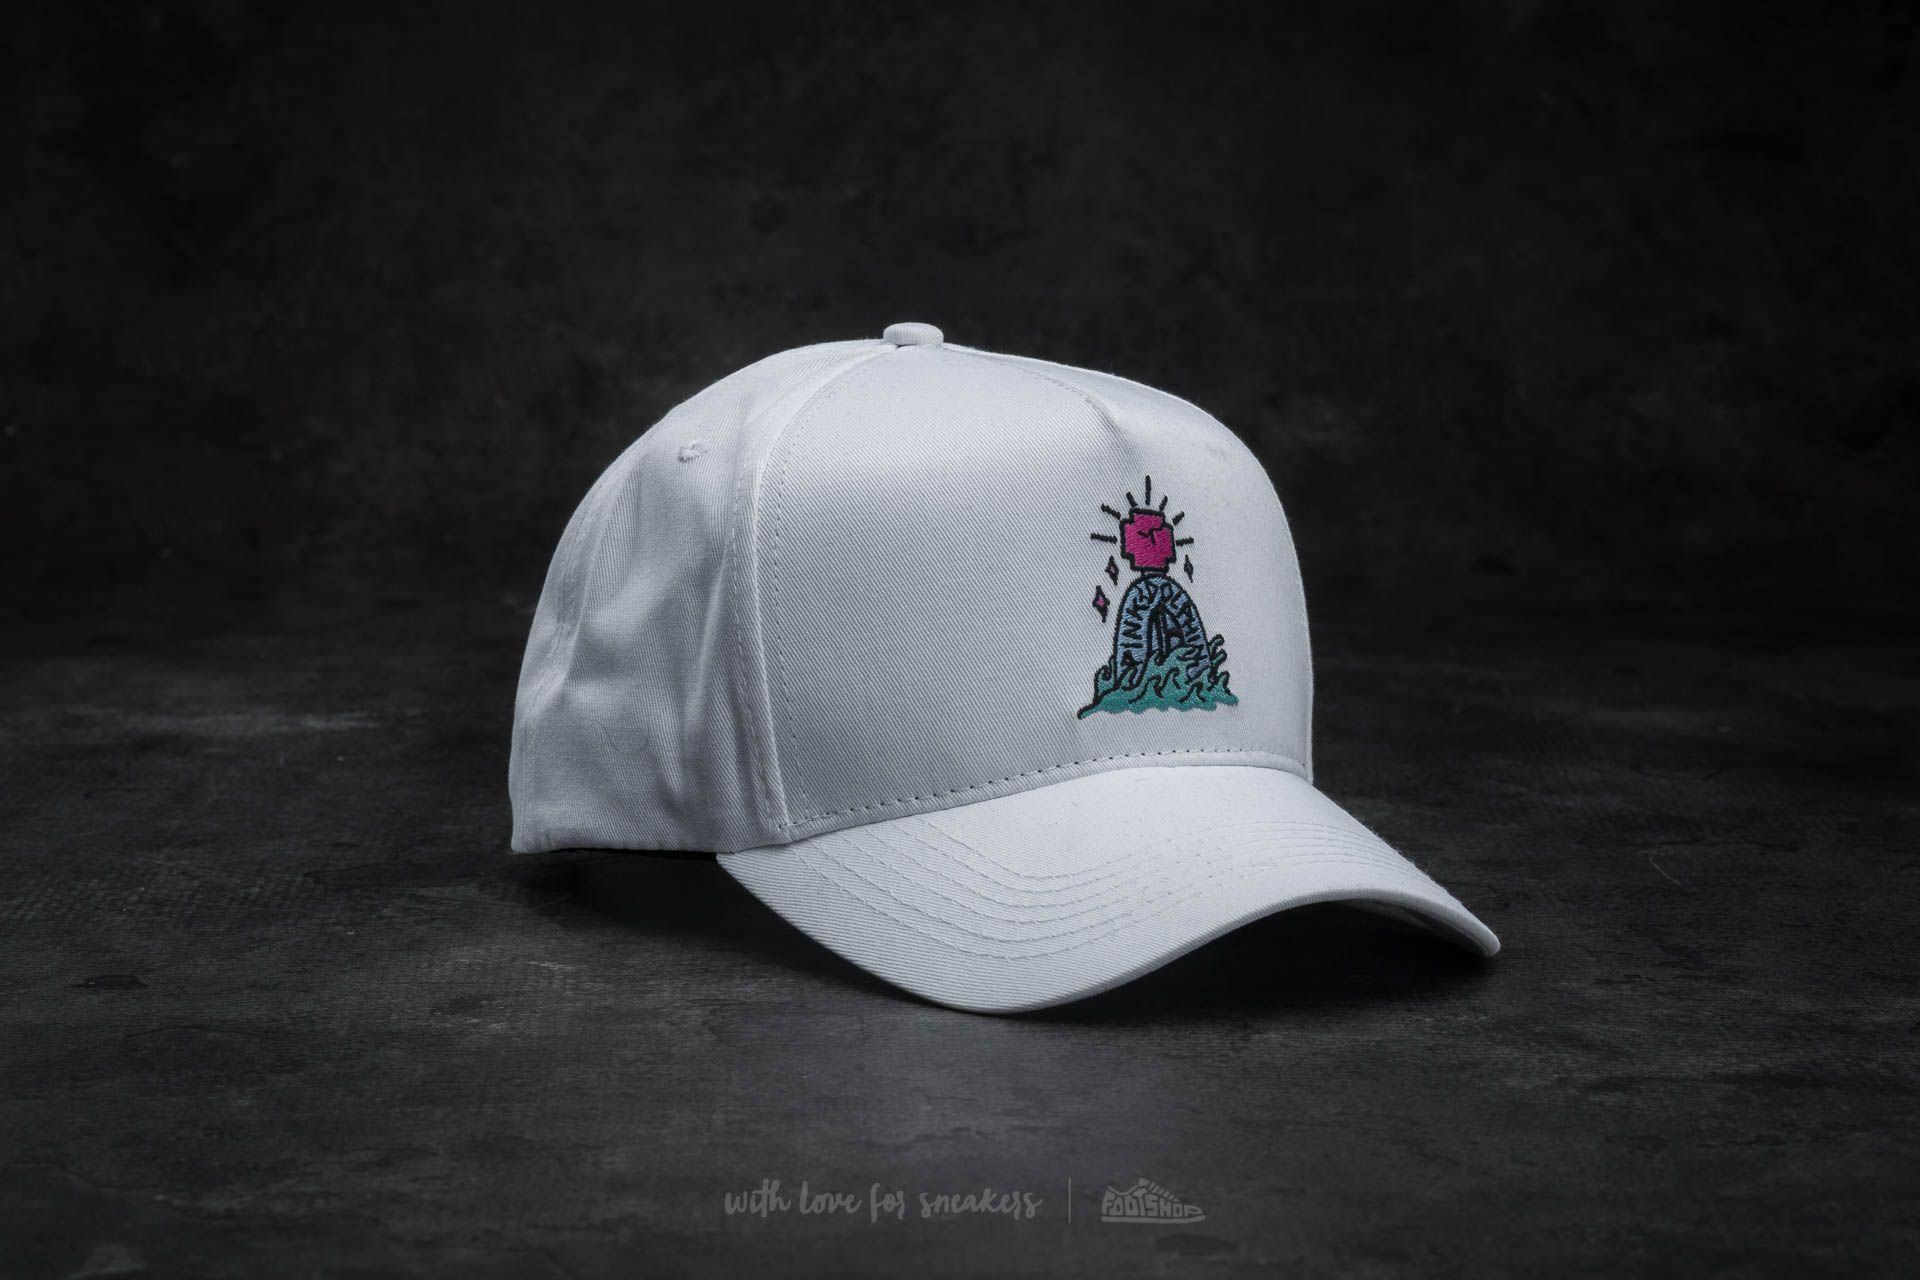 Pink Dolphin Tombstone 5 Panel Snapback White  618543bea0